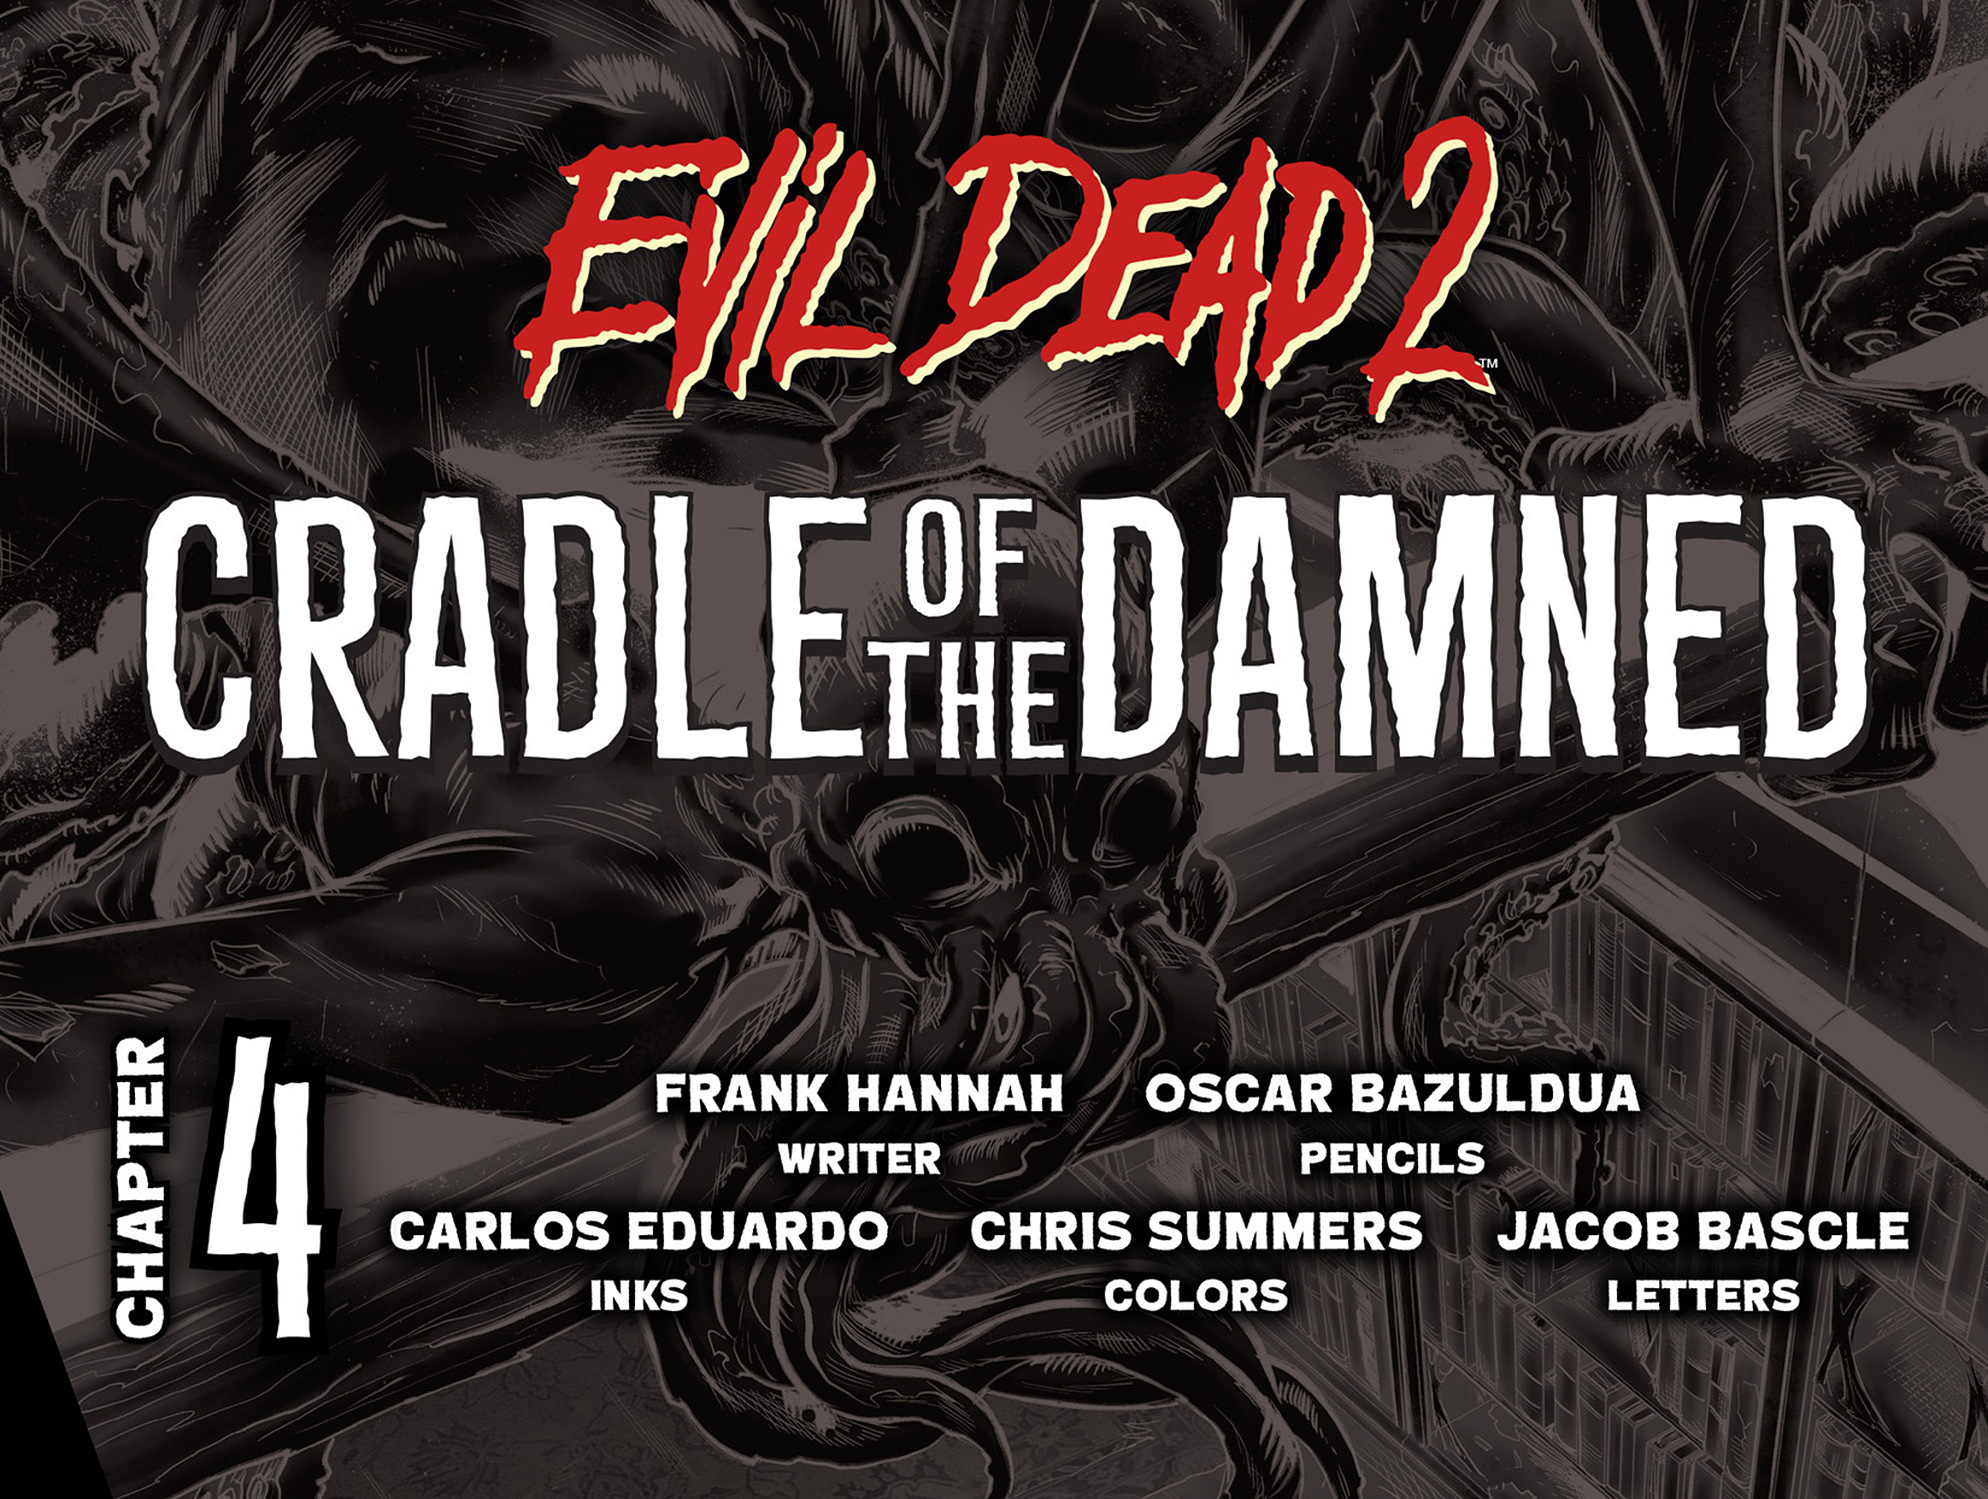 Read online Evil Dead 2: Cradle of the Damned comic -  Issue #4 - 2